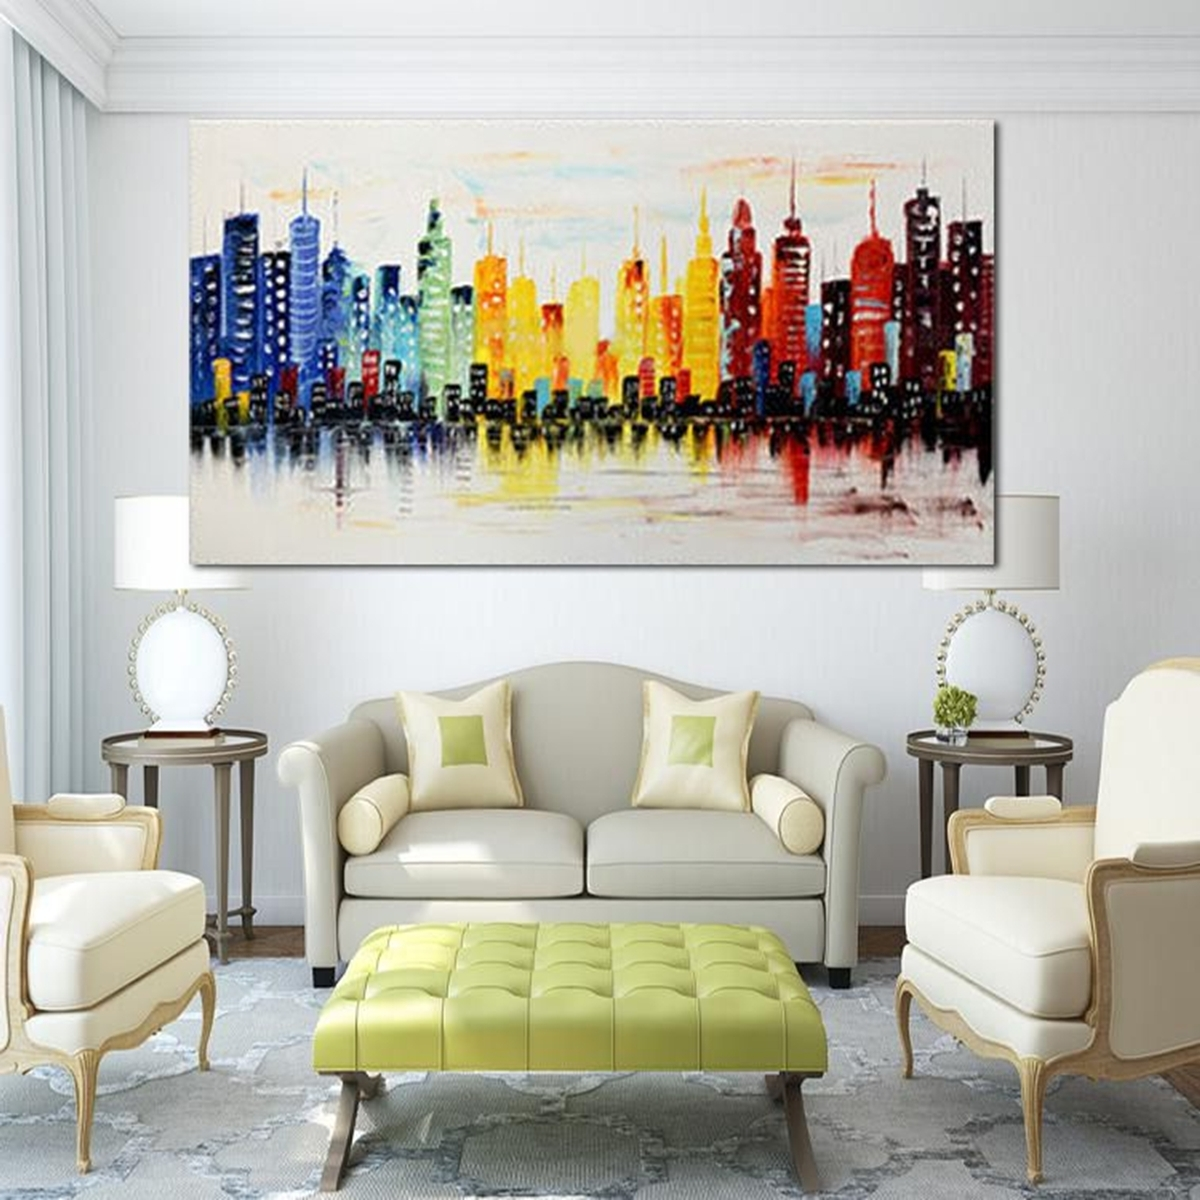 Most Recent 120x60cm Modern City Canvas Abstract Painting Print Living Room Art Pertaining To Framed Wall Art For Living Room (View 12 of 20)